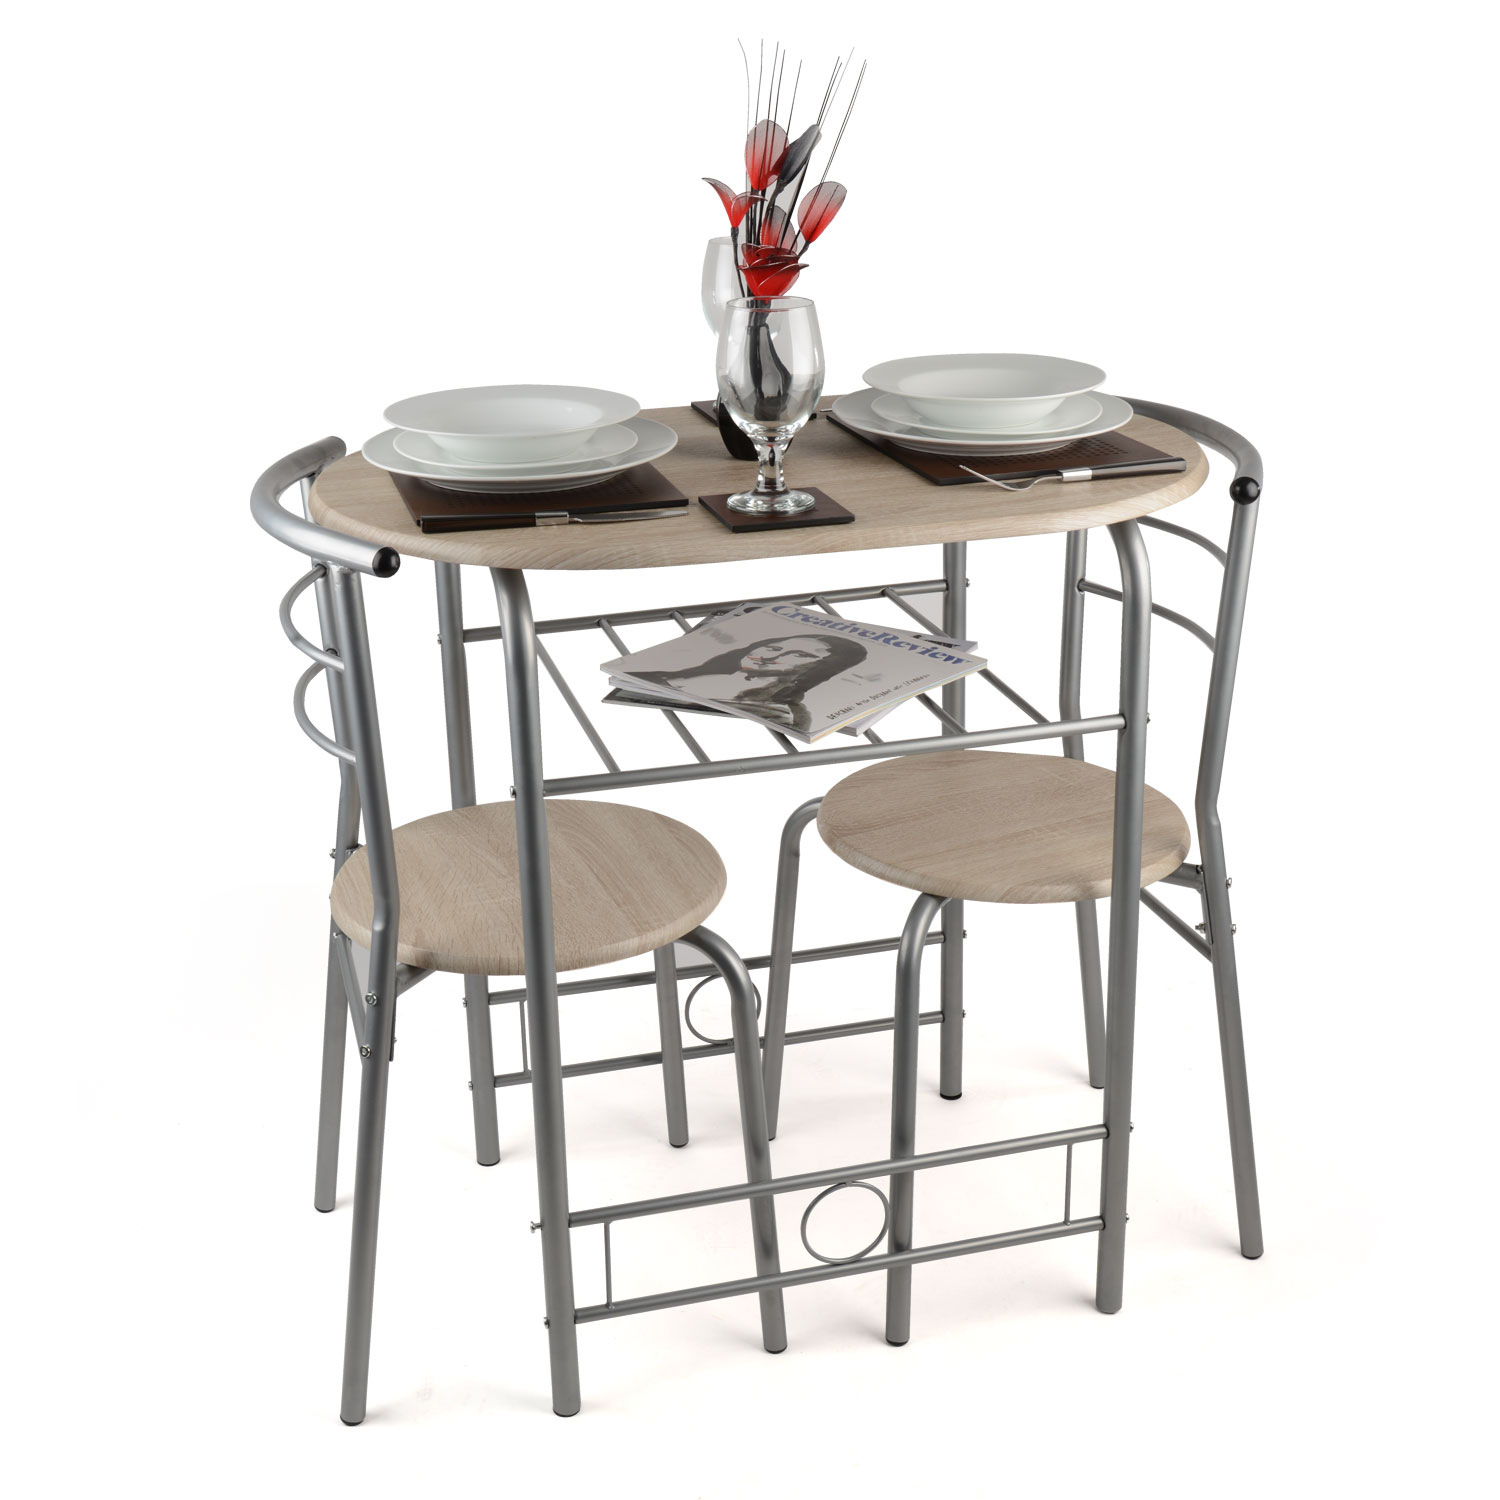 3 Piece Dining Set Breakfast Bar Kitchen Table Chairs